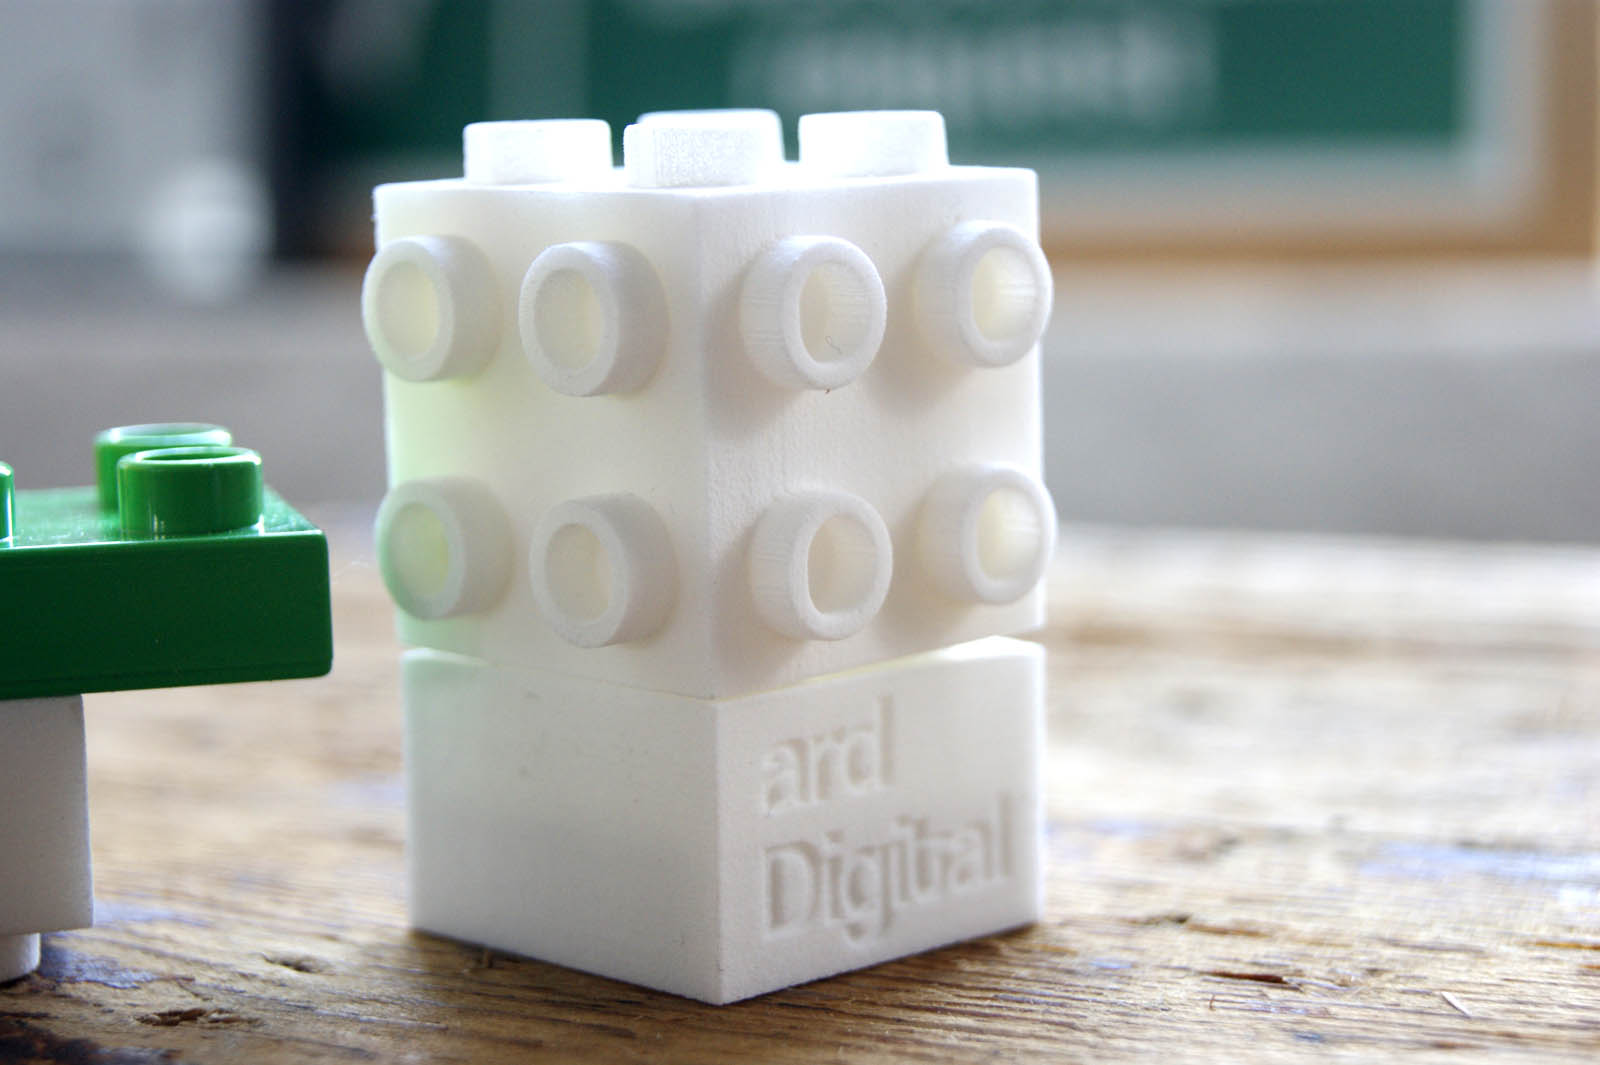 3D Printed Duplo Blocks